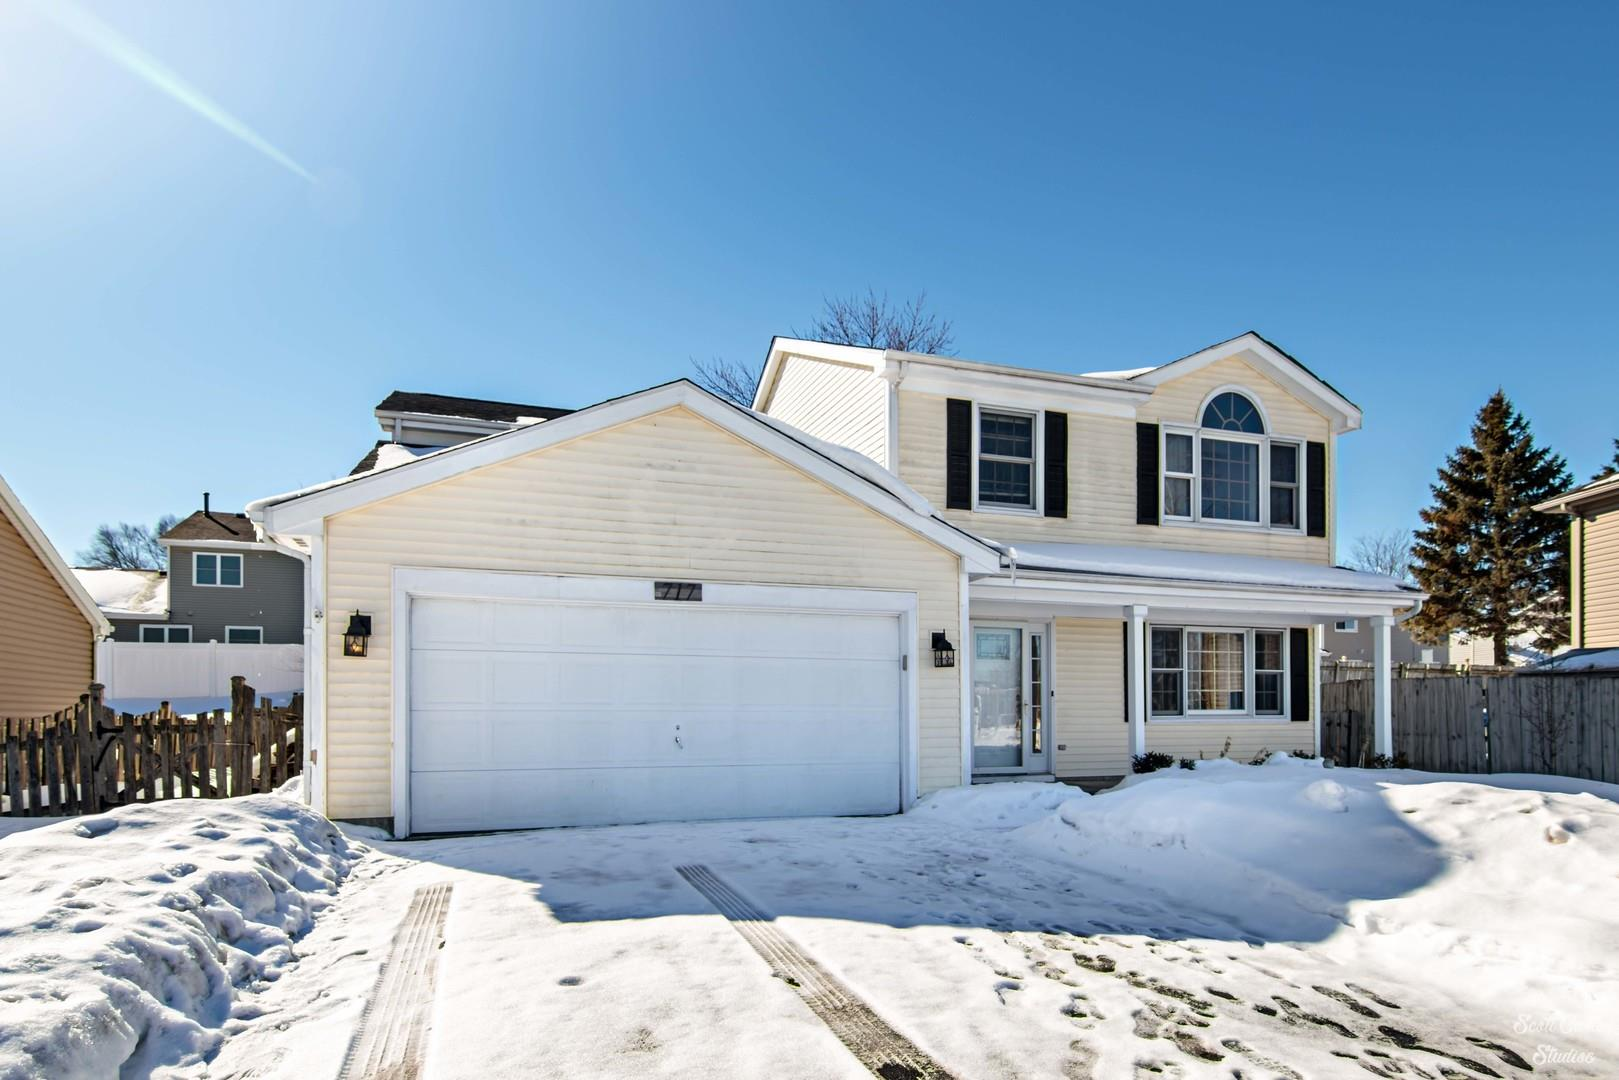 717 Greenmeadow Court, Crystal Lake, IL 60014 - #: 10999957